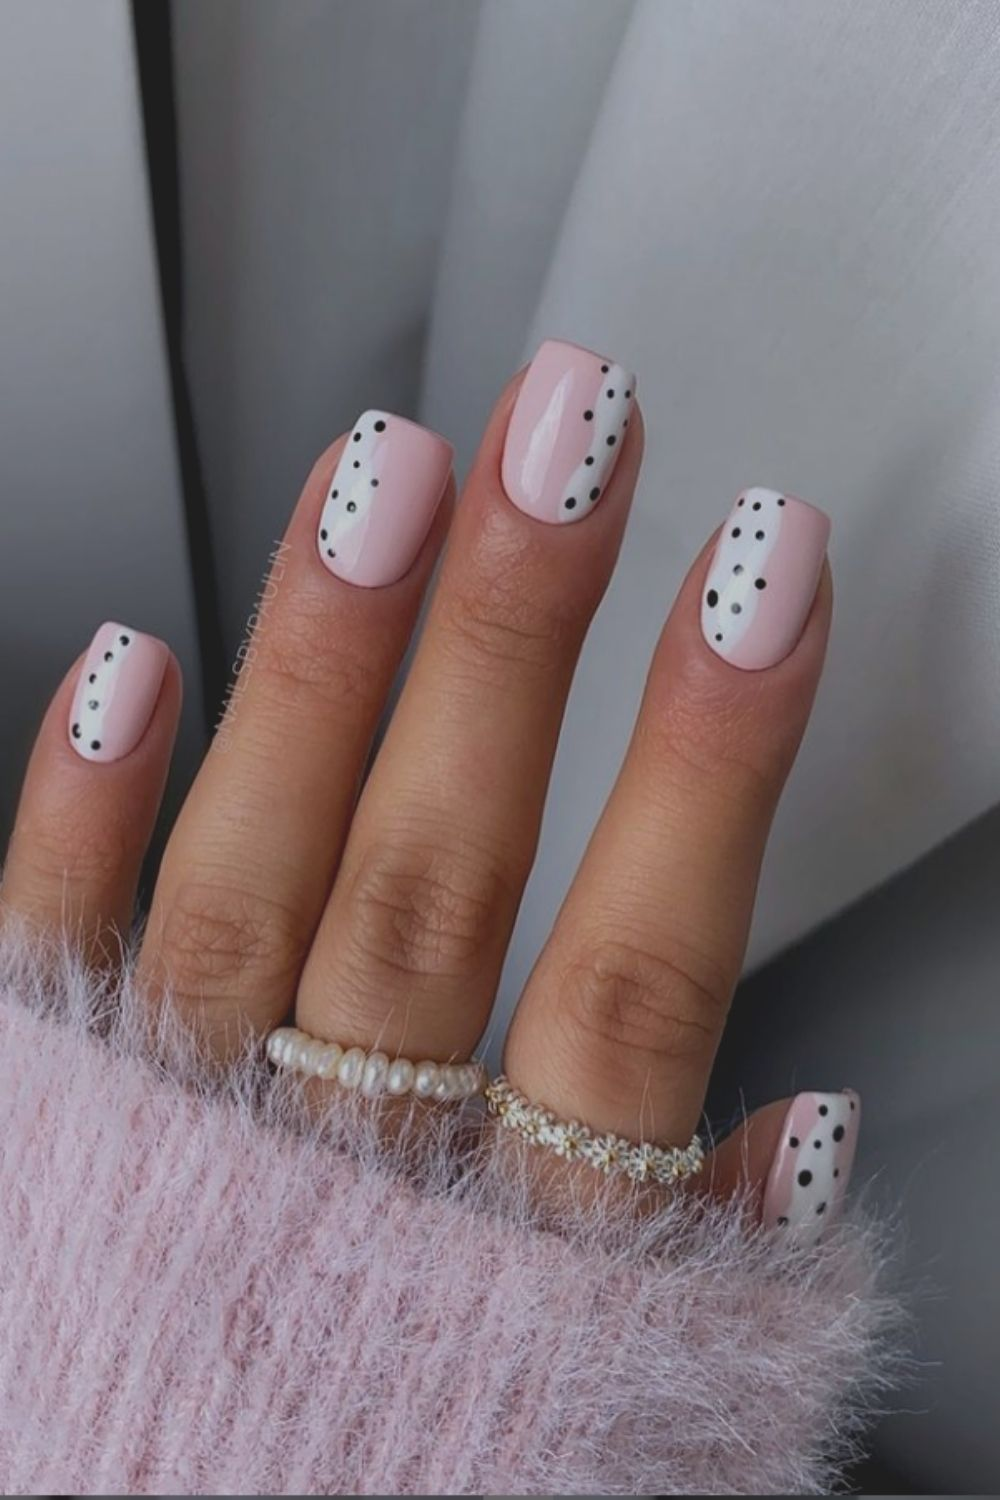 White and pink nails art with black dots